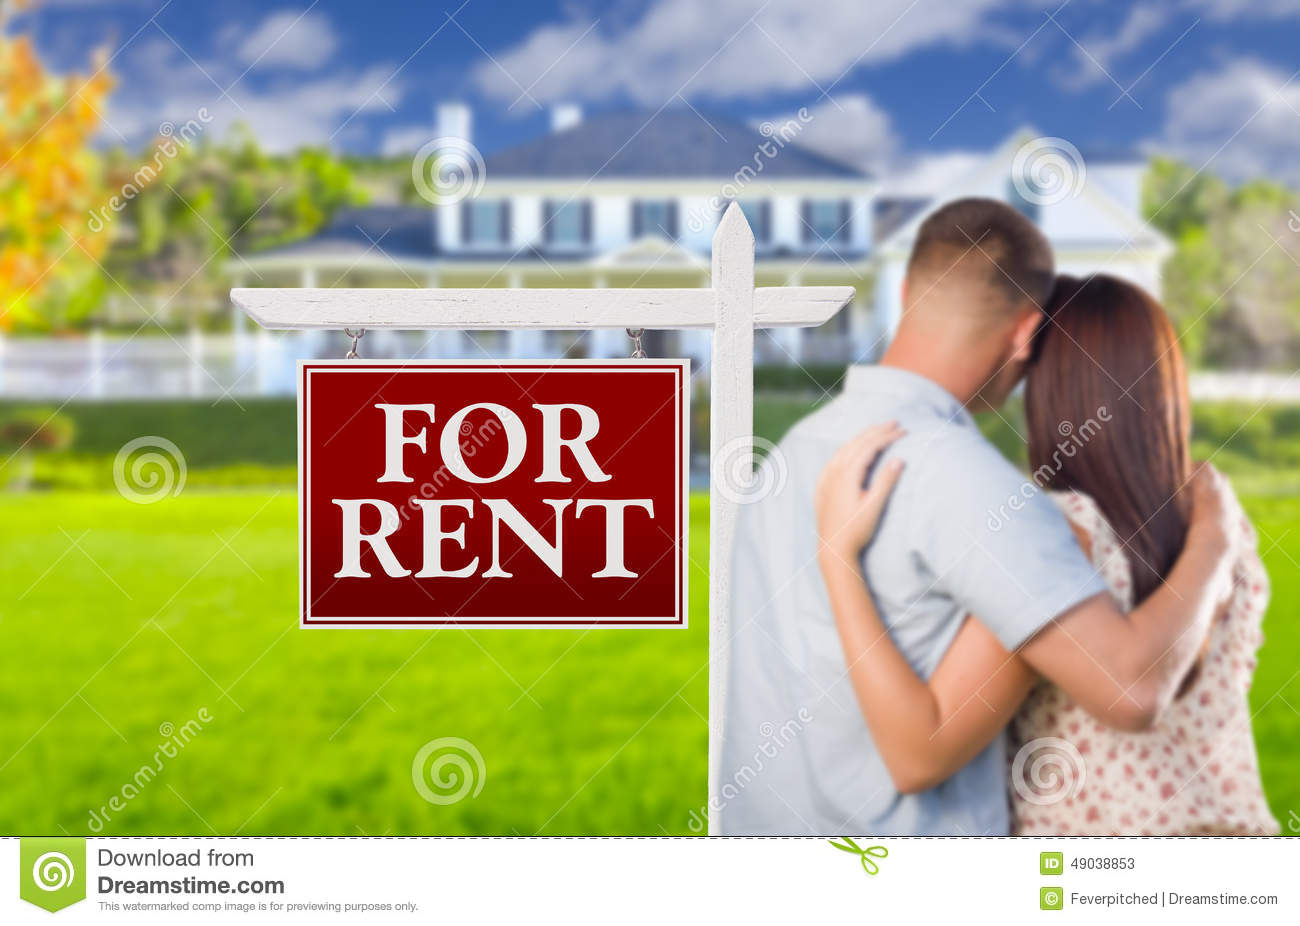 people looking for a place to rent